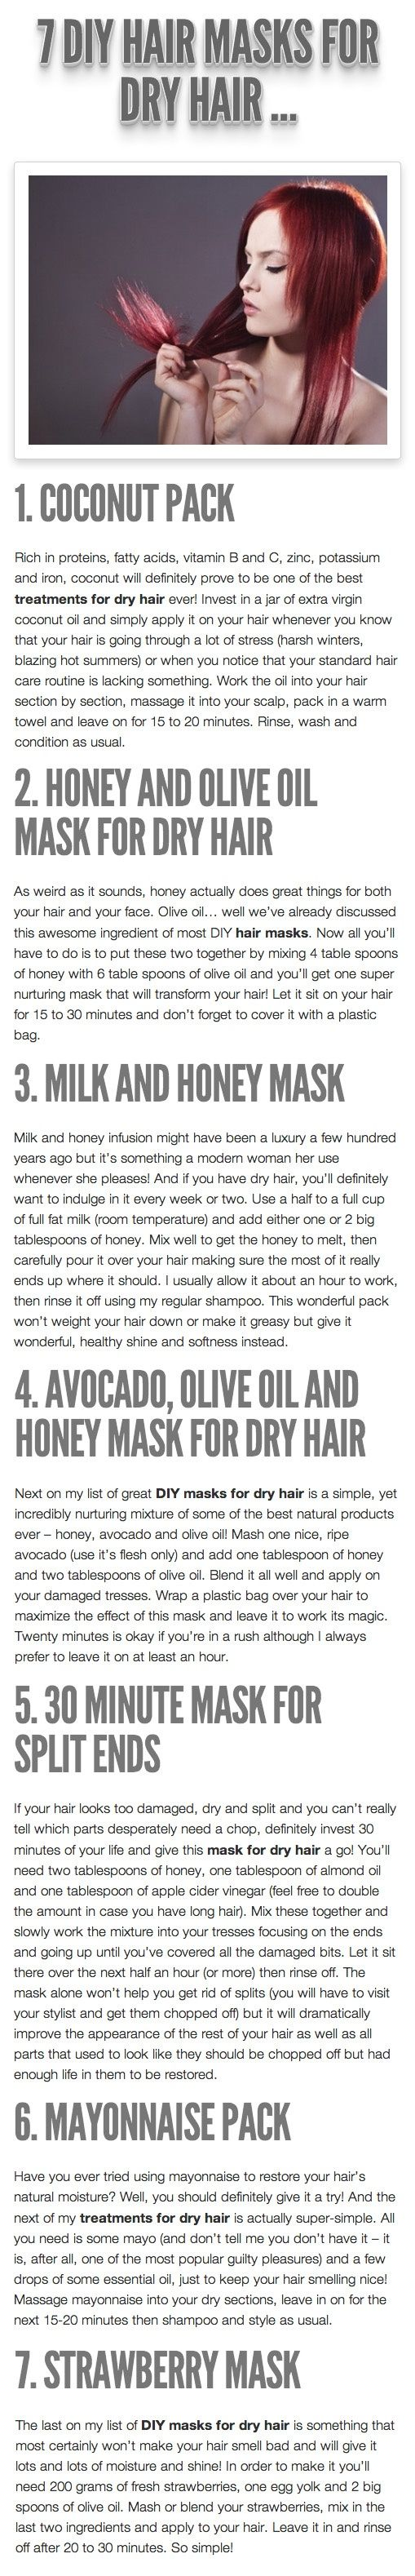 PRODUCTS | HAIR MASQUES :: 7 DIY Hair Masks For DRY Hair #naturalskincare…